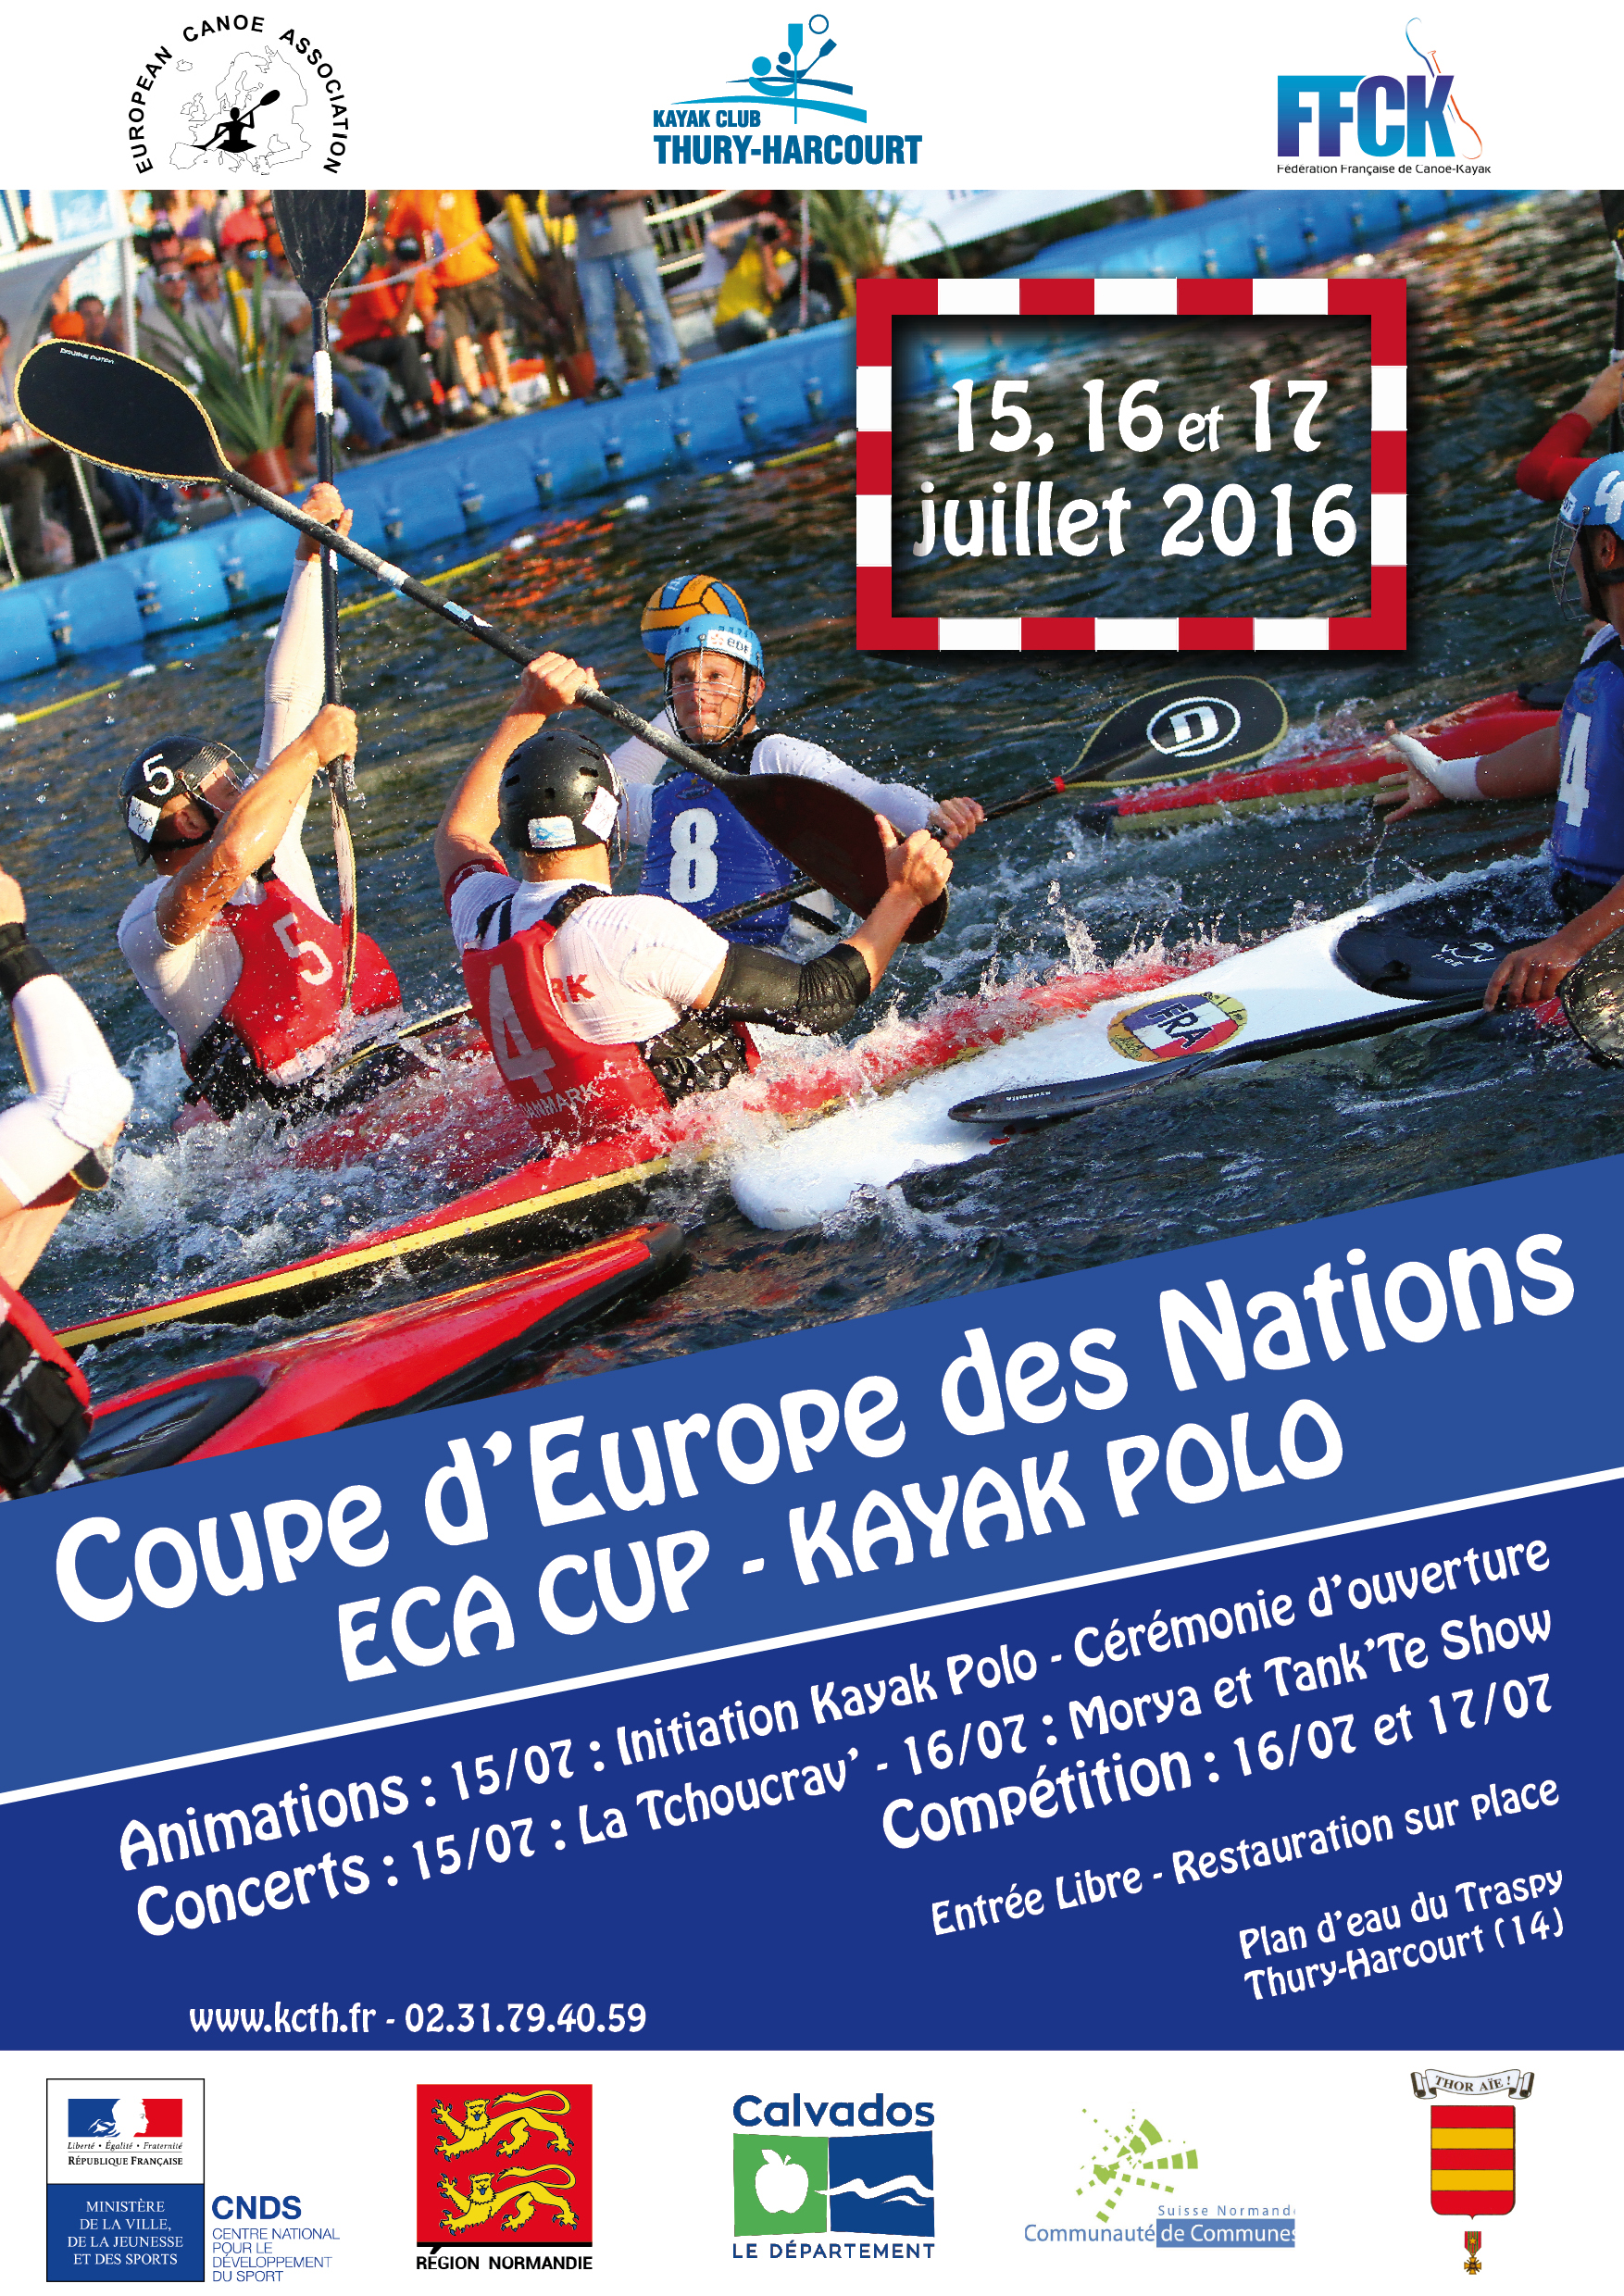 Eca cup coupe d 39 europe des nations 2016 un cocktail d - Calendrier coupe d europe 2016 ...